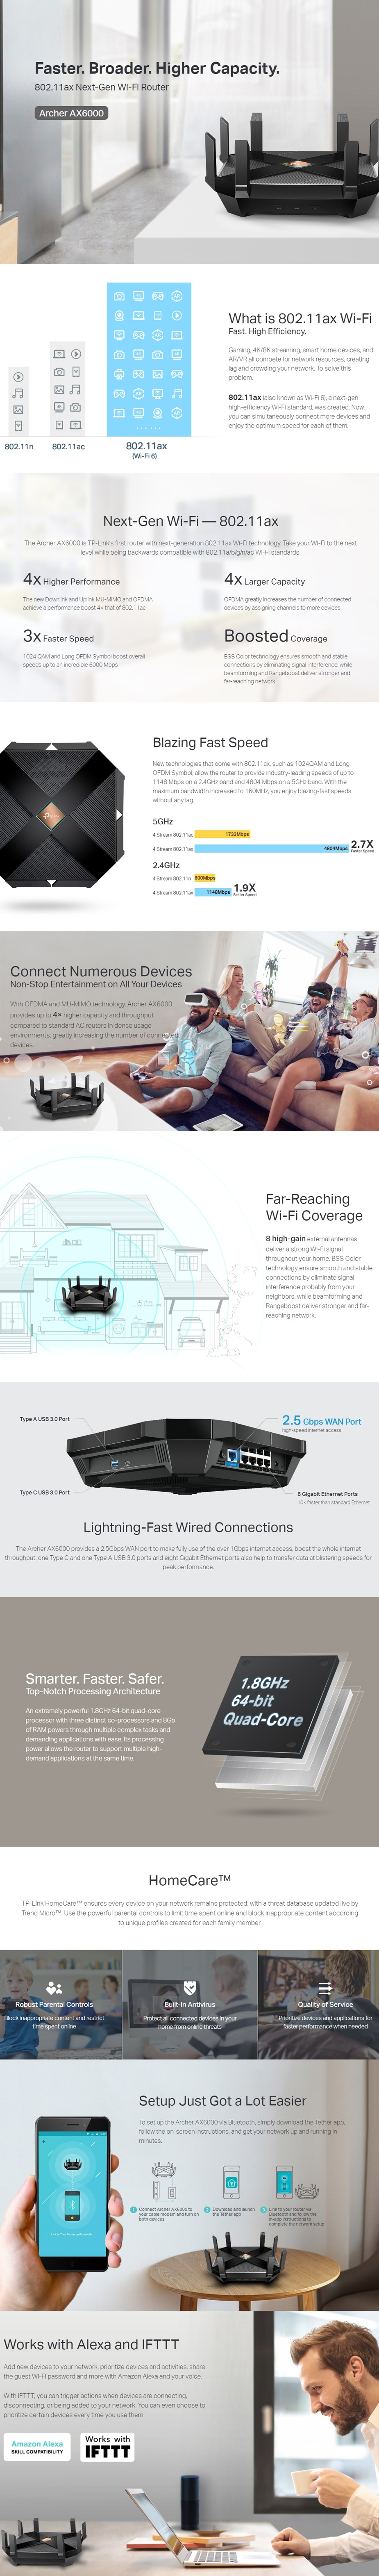 TP-Link Archer AX6000 Dual-Band Next-Gen WiFi 6 Router - Desktop Overview 1